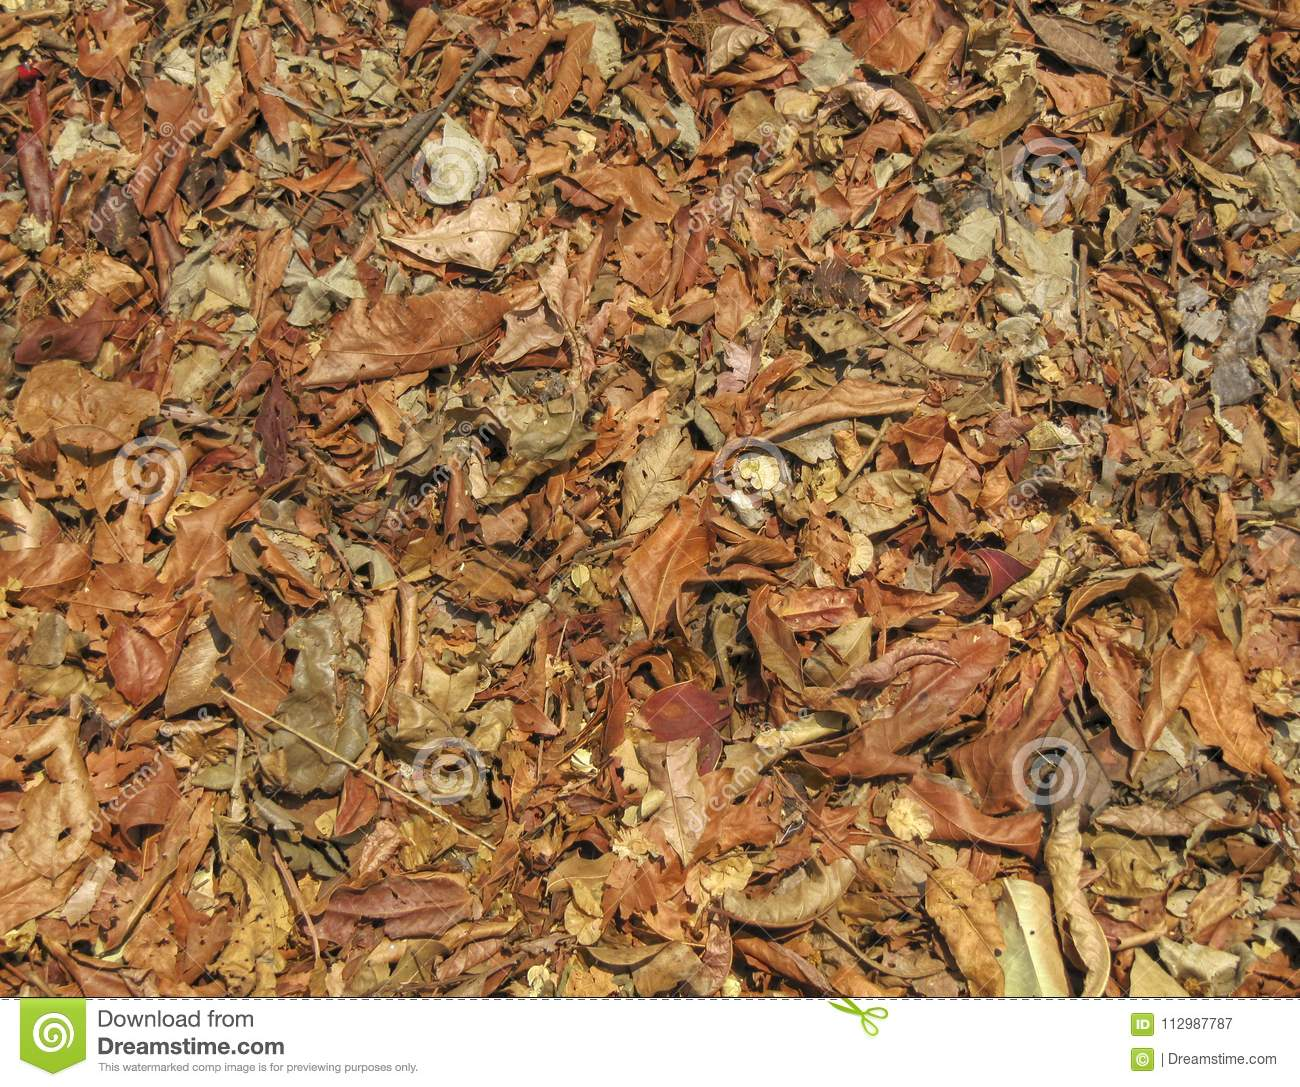 Richly coloured fallen forest leaves